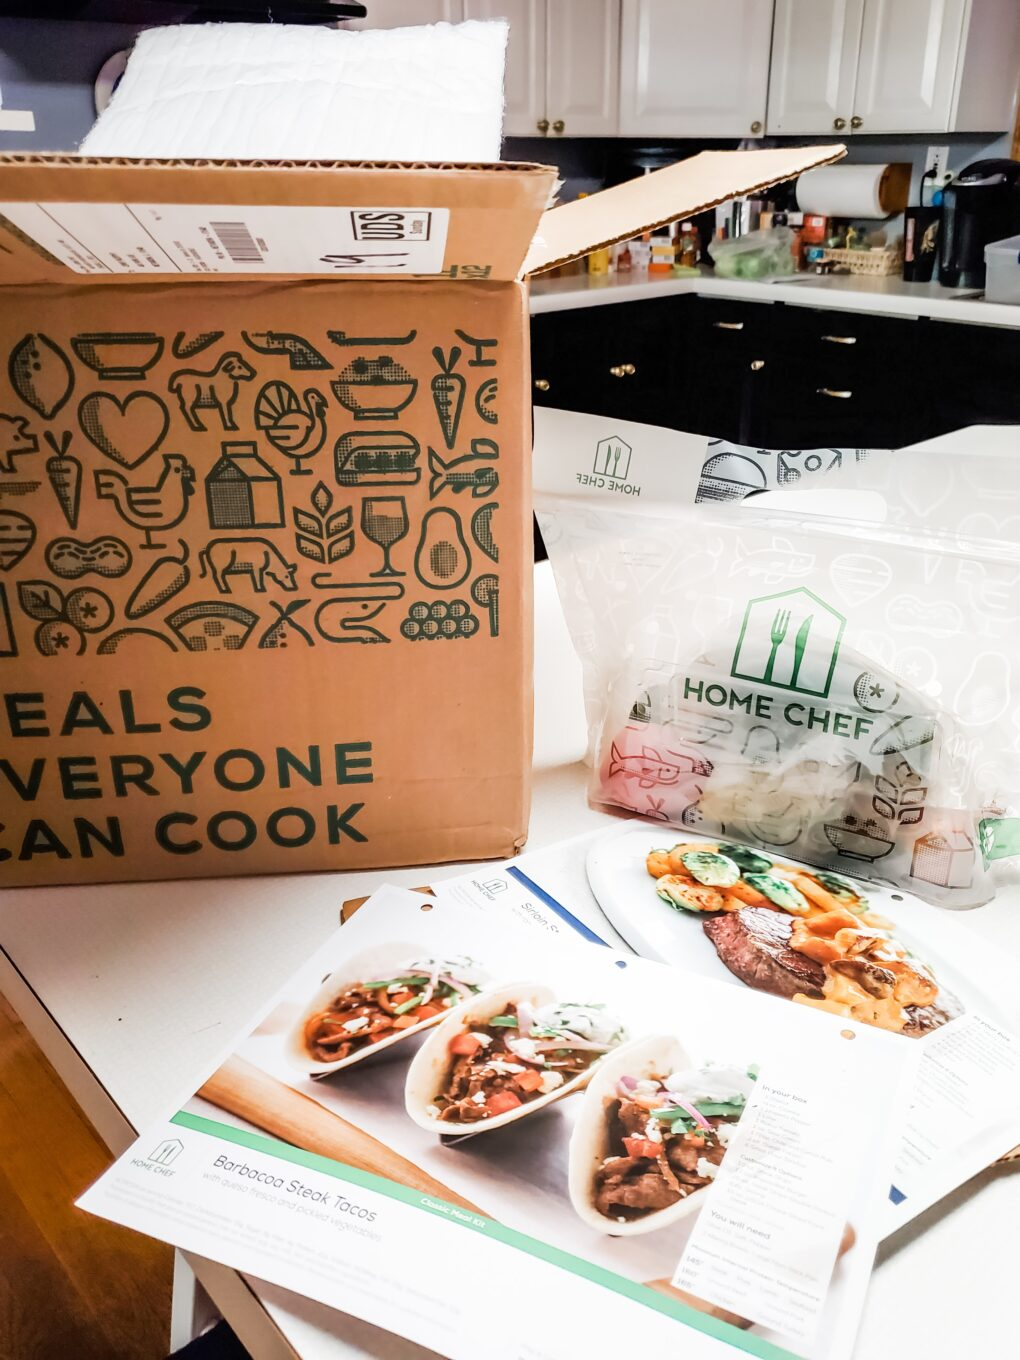 Home Chef Box Packing Image